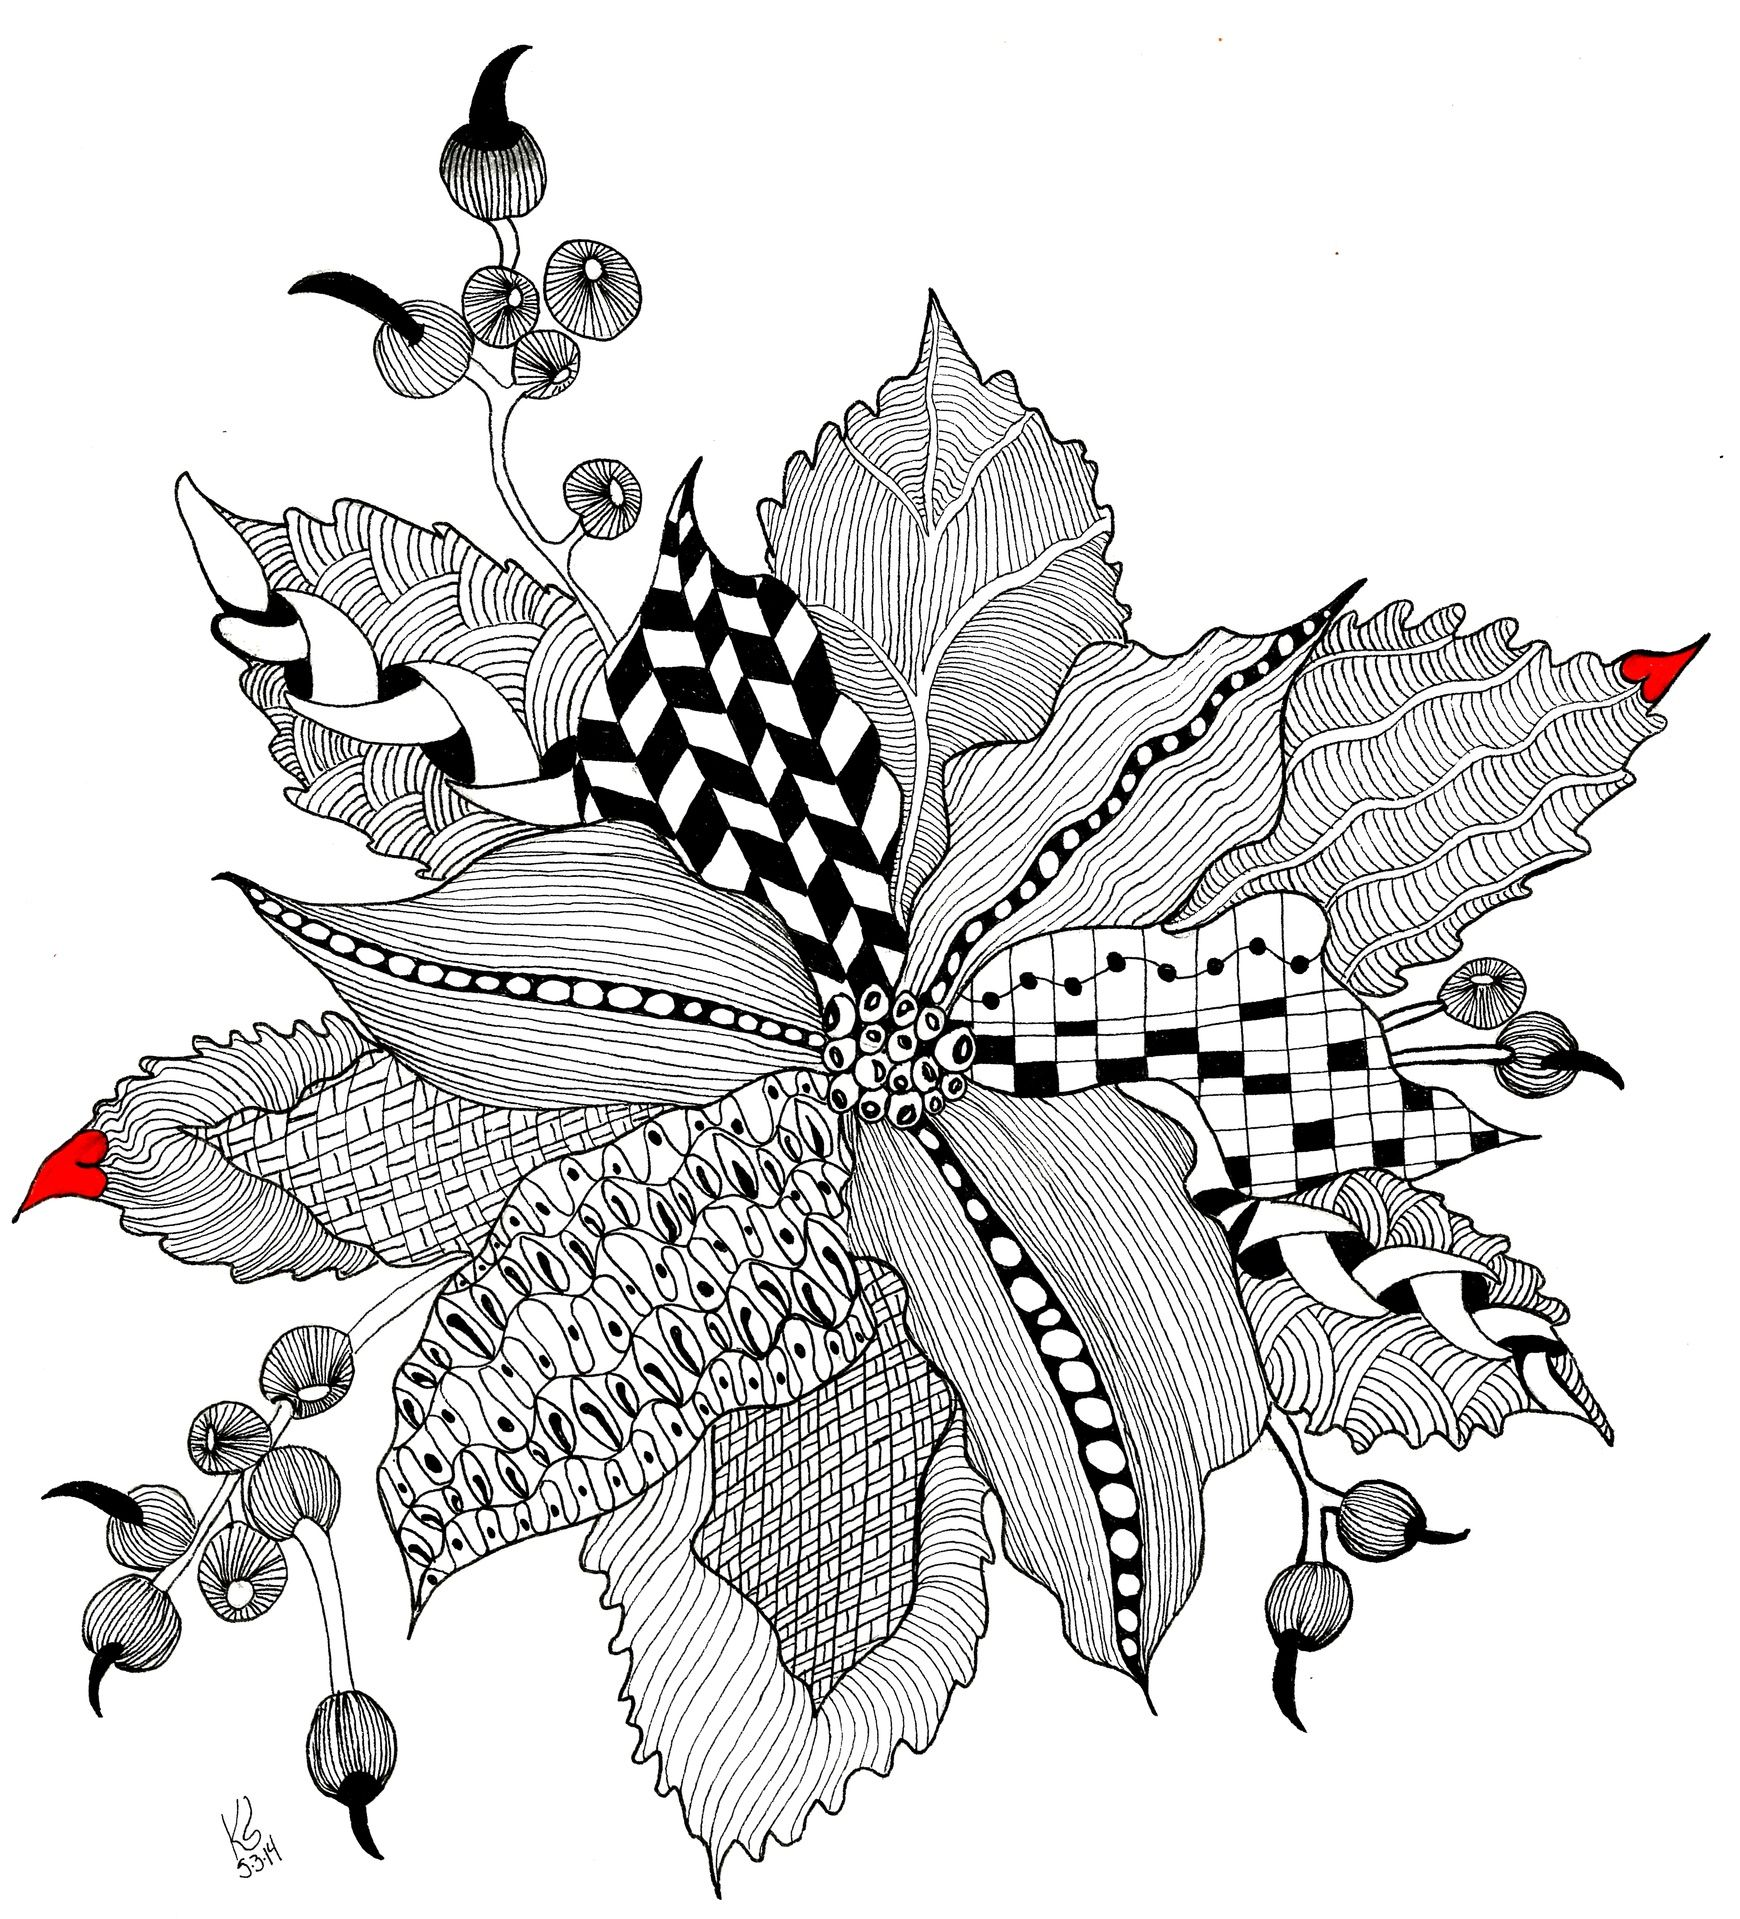 One Poinsettia Black and White | Art: B1- ZIAs, Doodles, | Pinterest ...